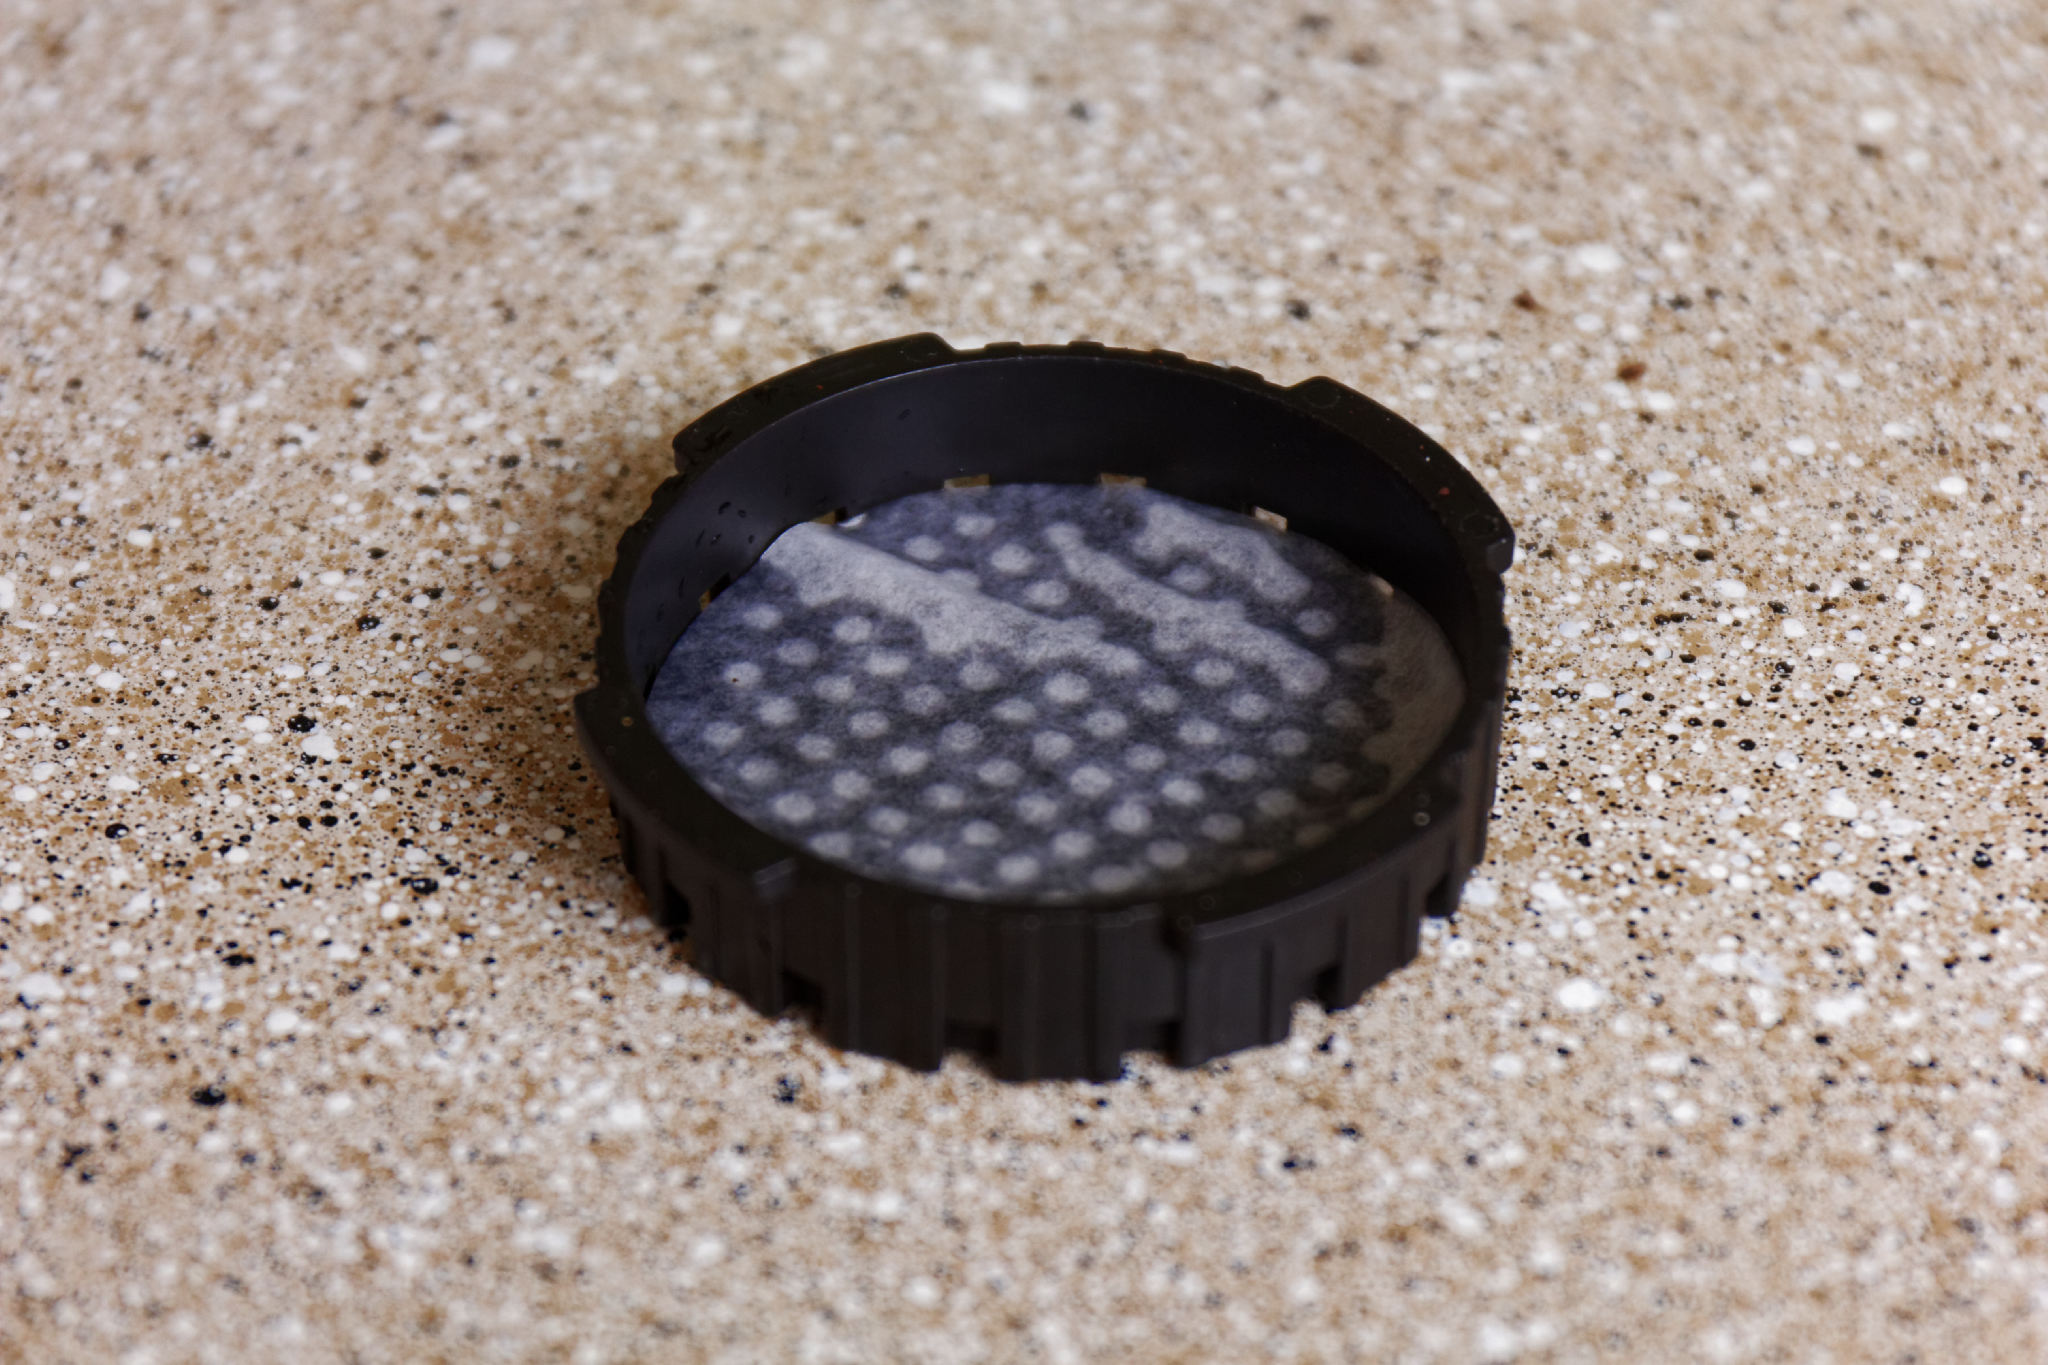 A wetted cap of an areopress with a filter.